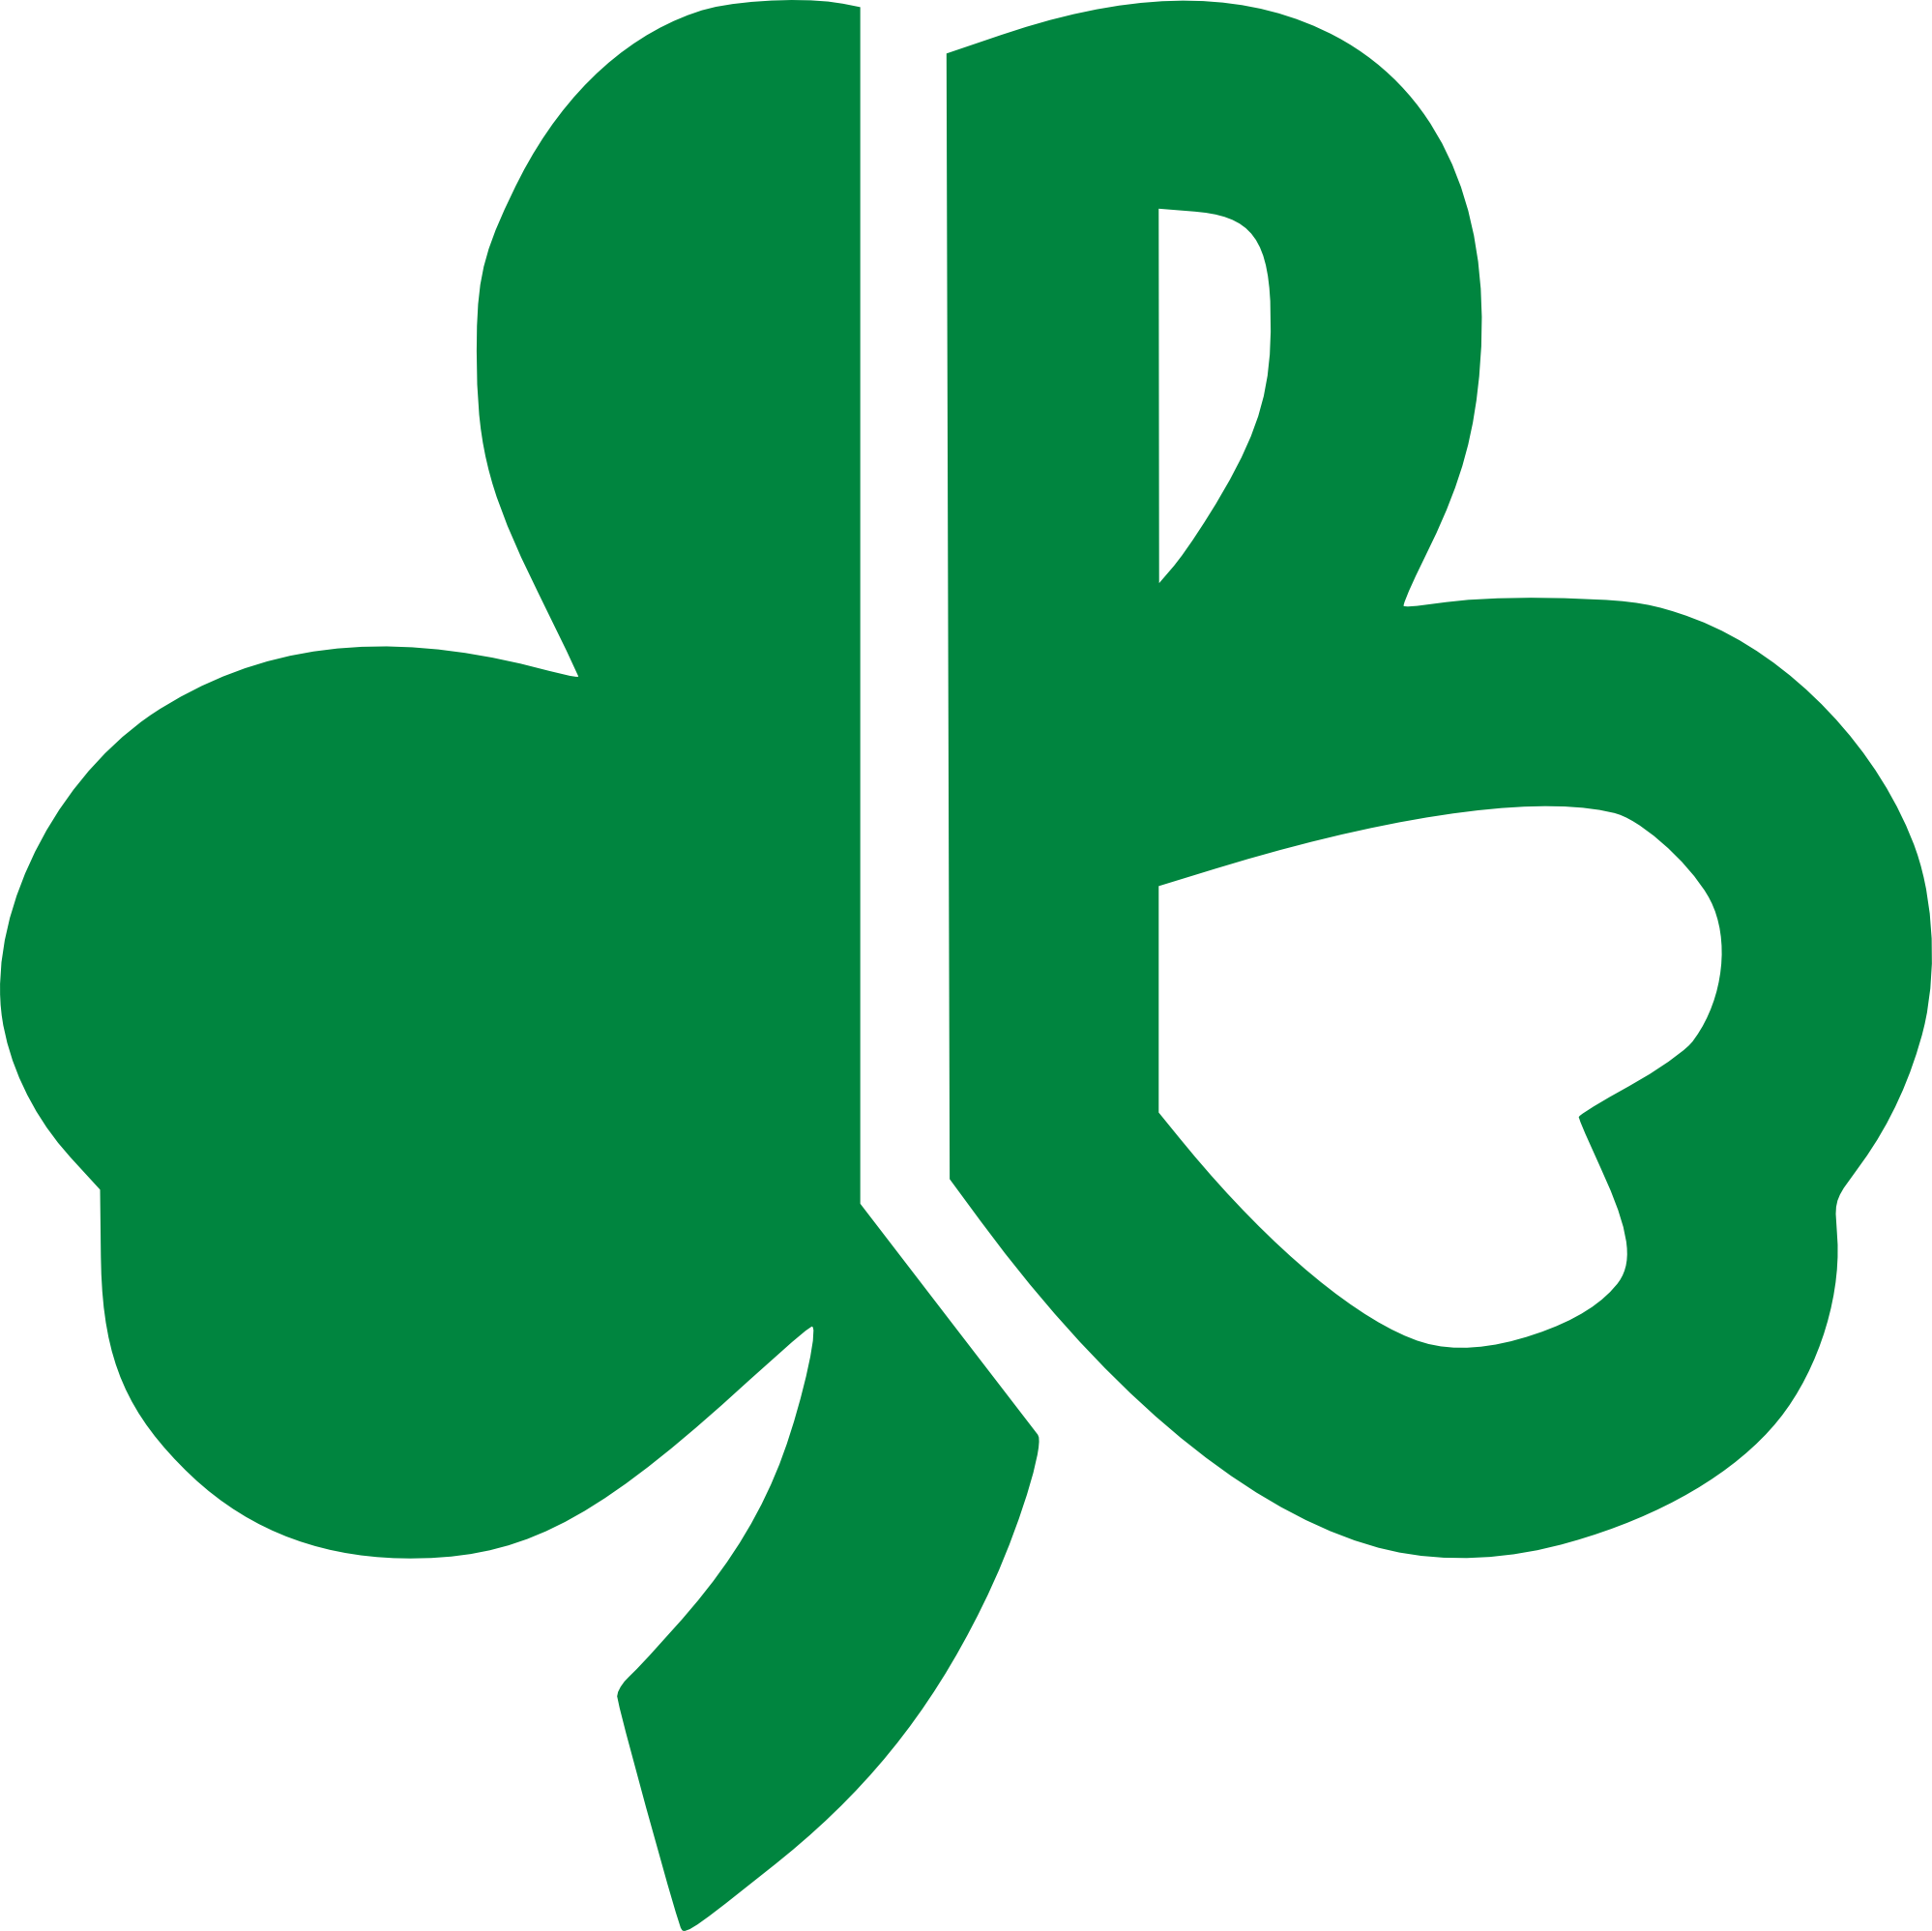 Boston celtics basketball clipart clip art free stock Vintage 1970's Boston Celtics clover shamrock capital B logo | 70's ... clip art free stock